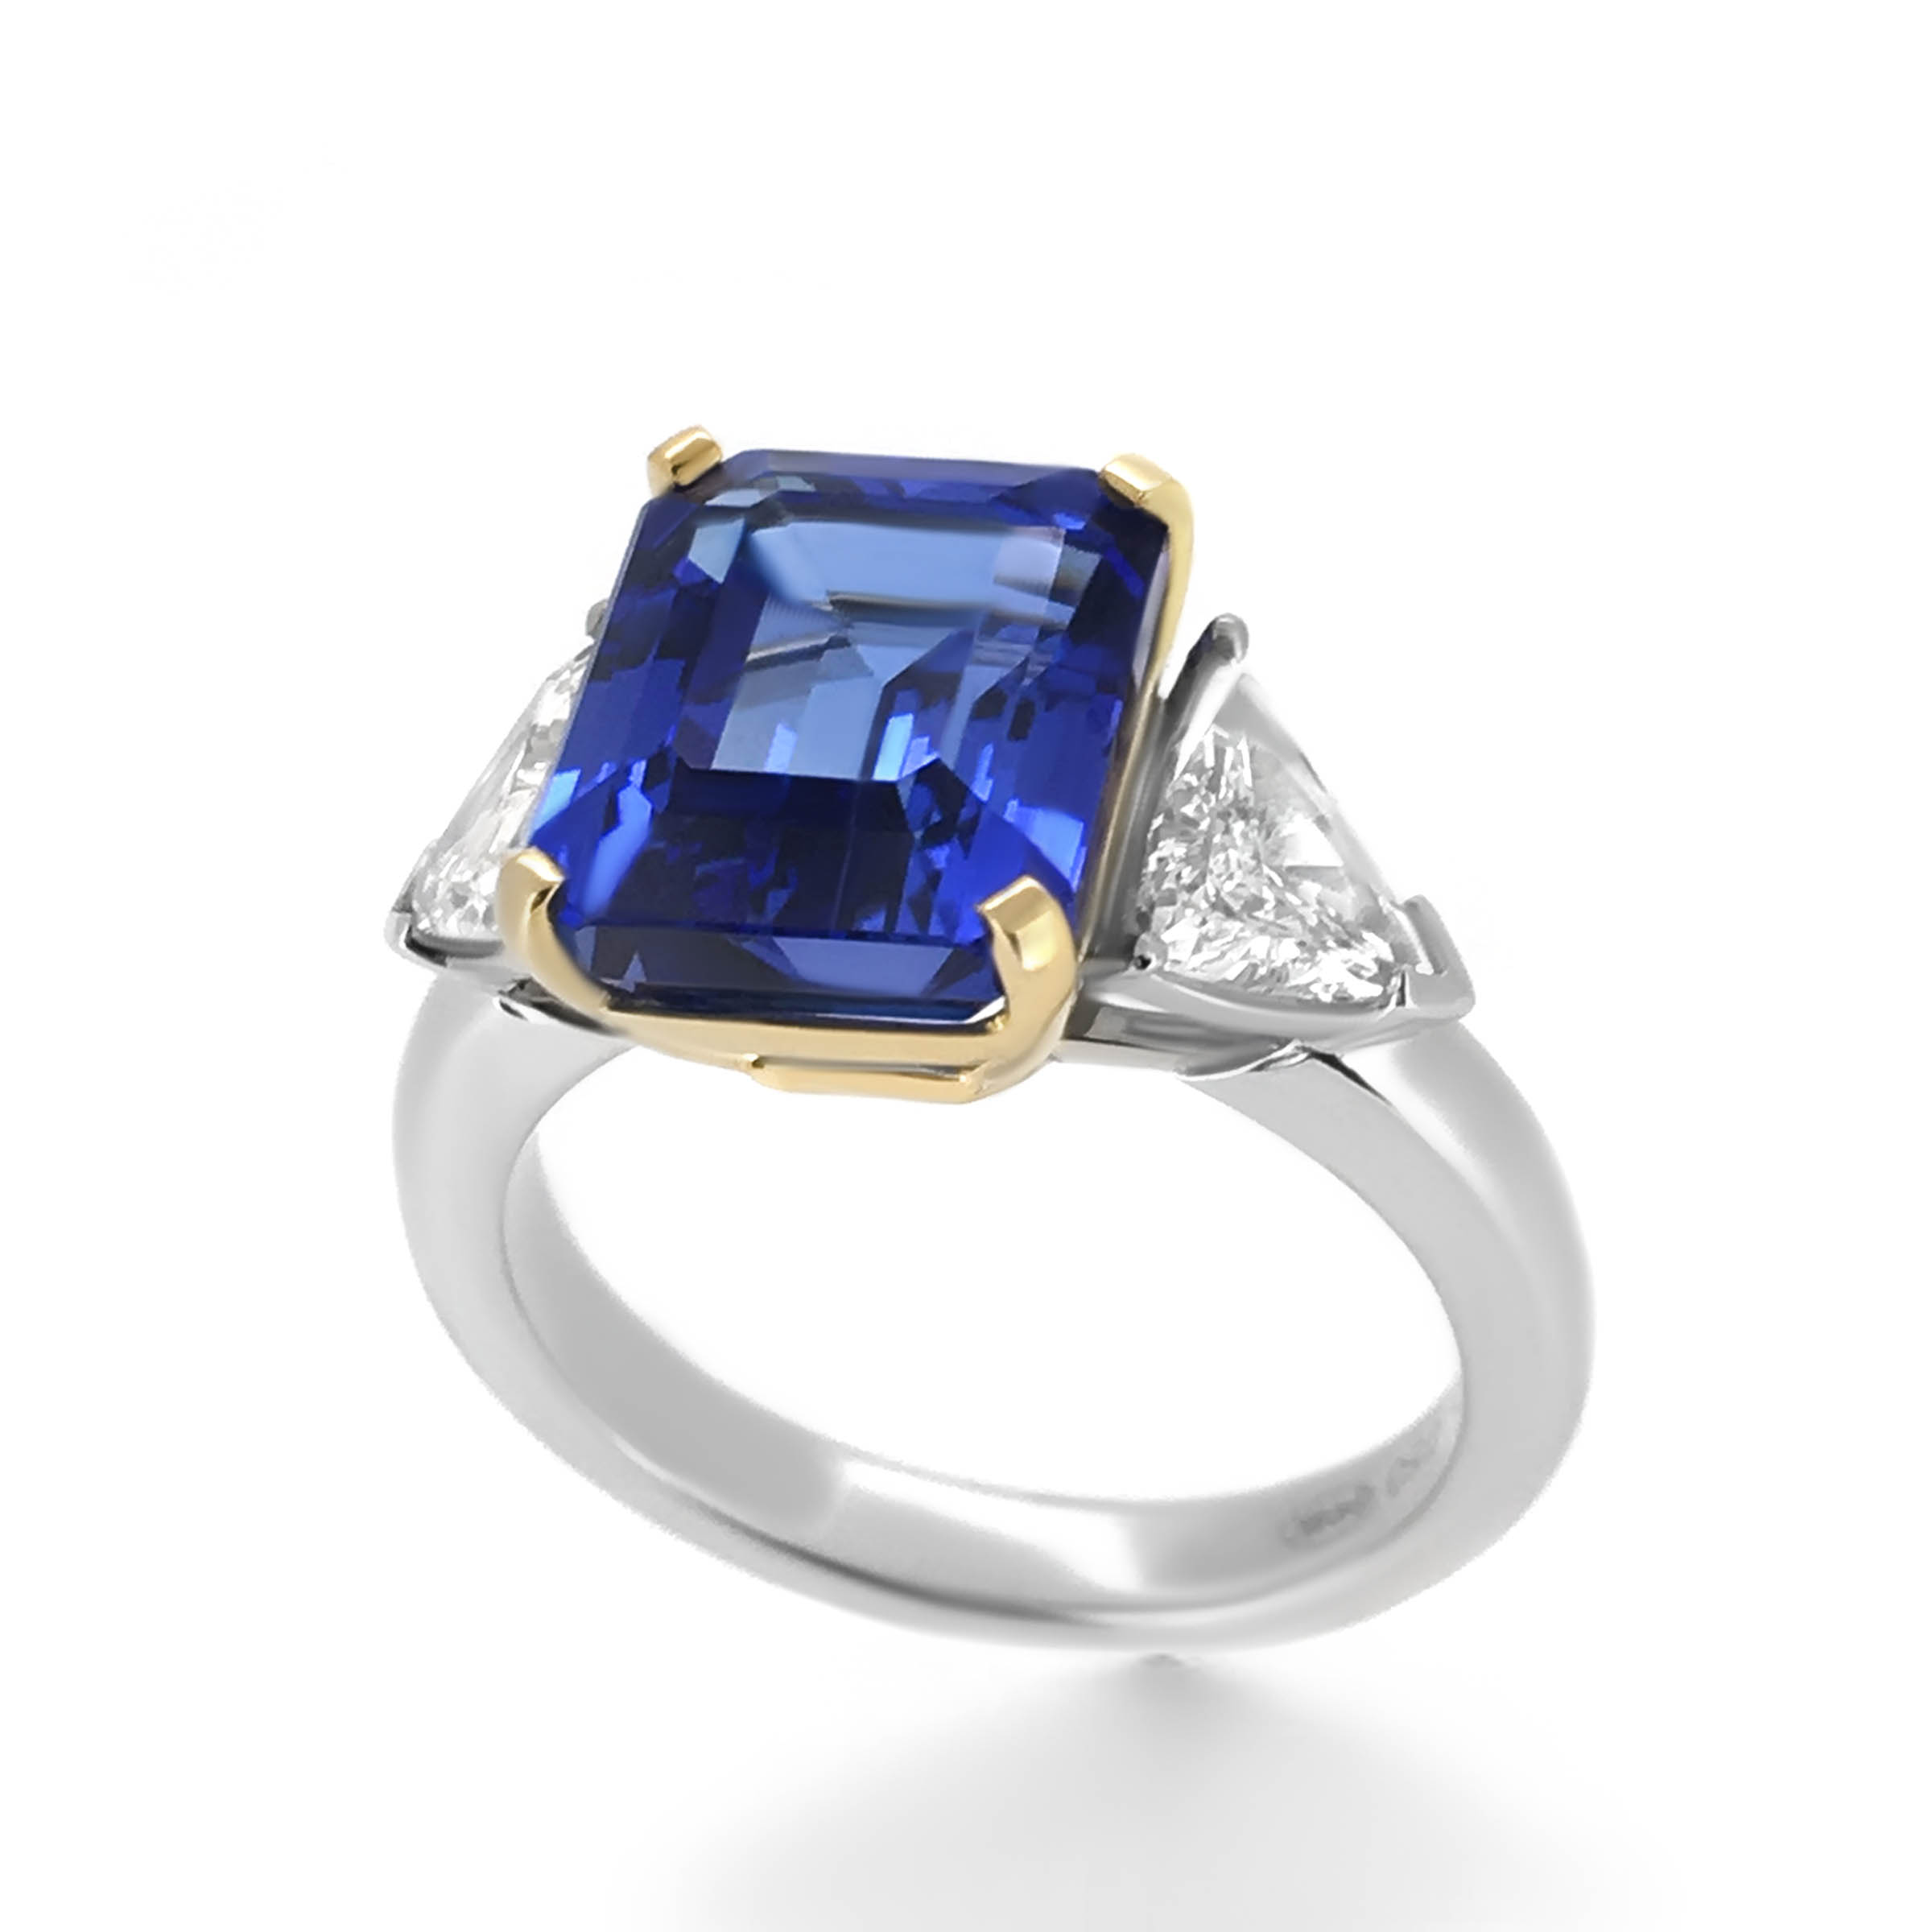 goldsmith jewelry channel custom wilson gold tanzanite white rings sapphire trillion center set and sides dave on salem